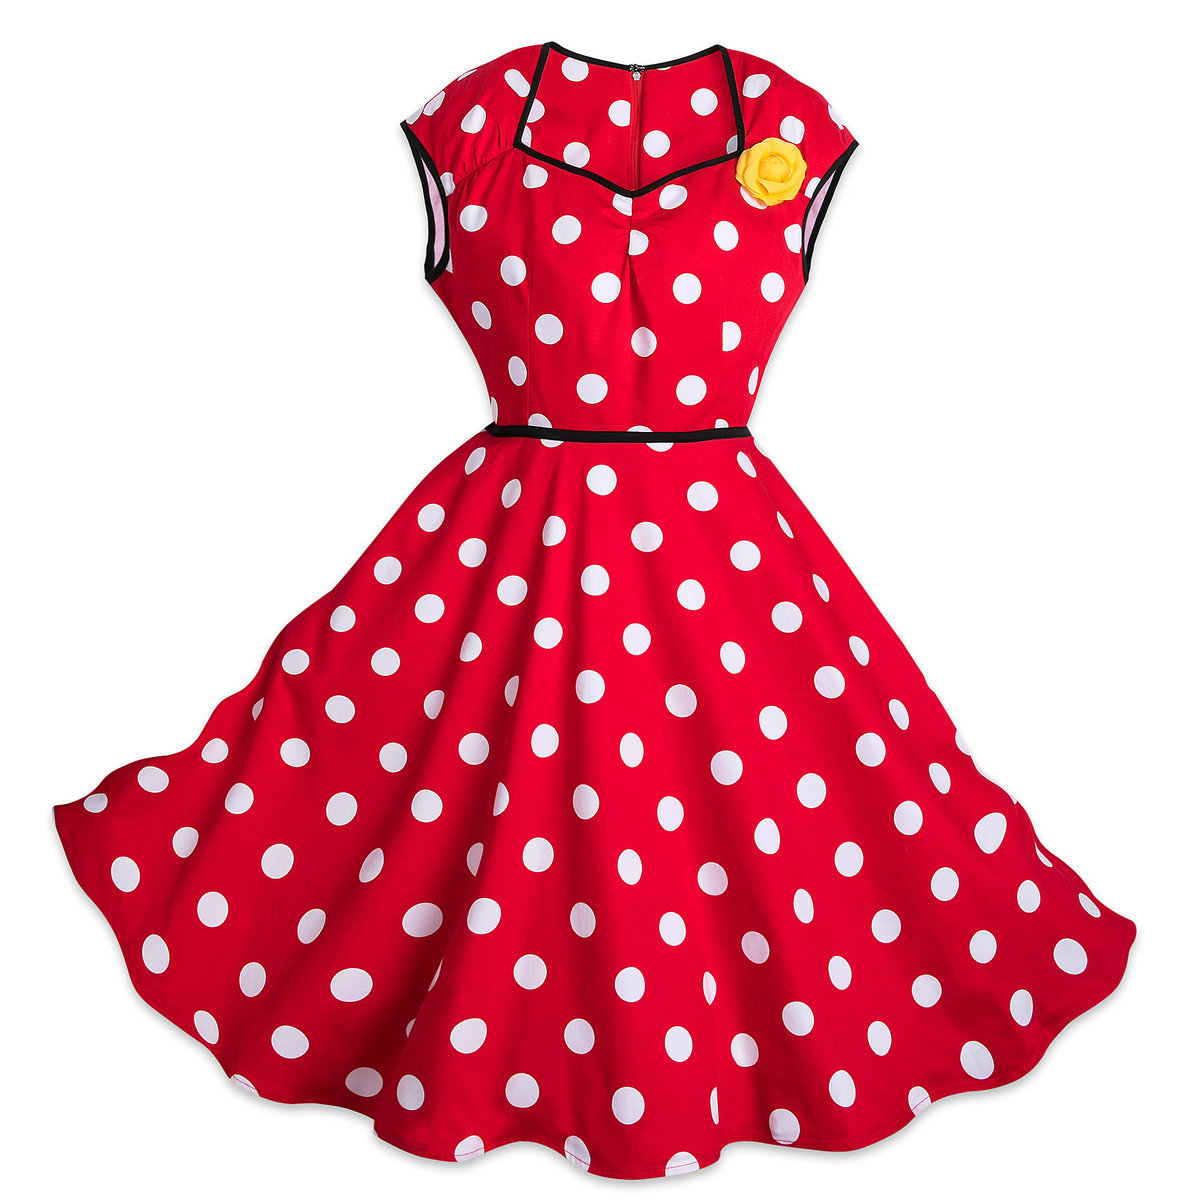 6cc3cd34e Product Image of Minnie Mouse Sweetheart Dress for Women # 1